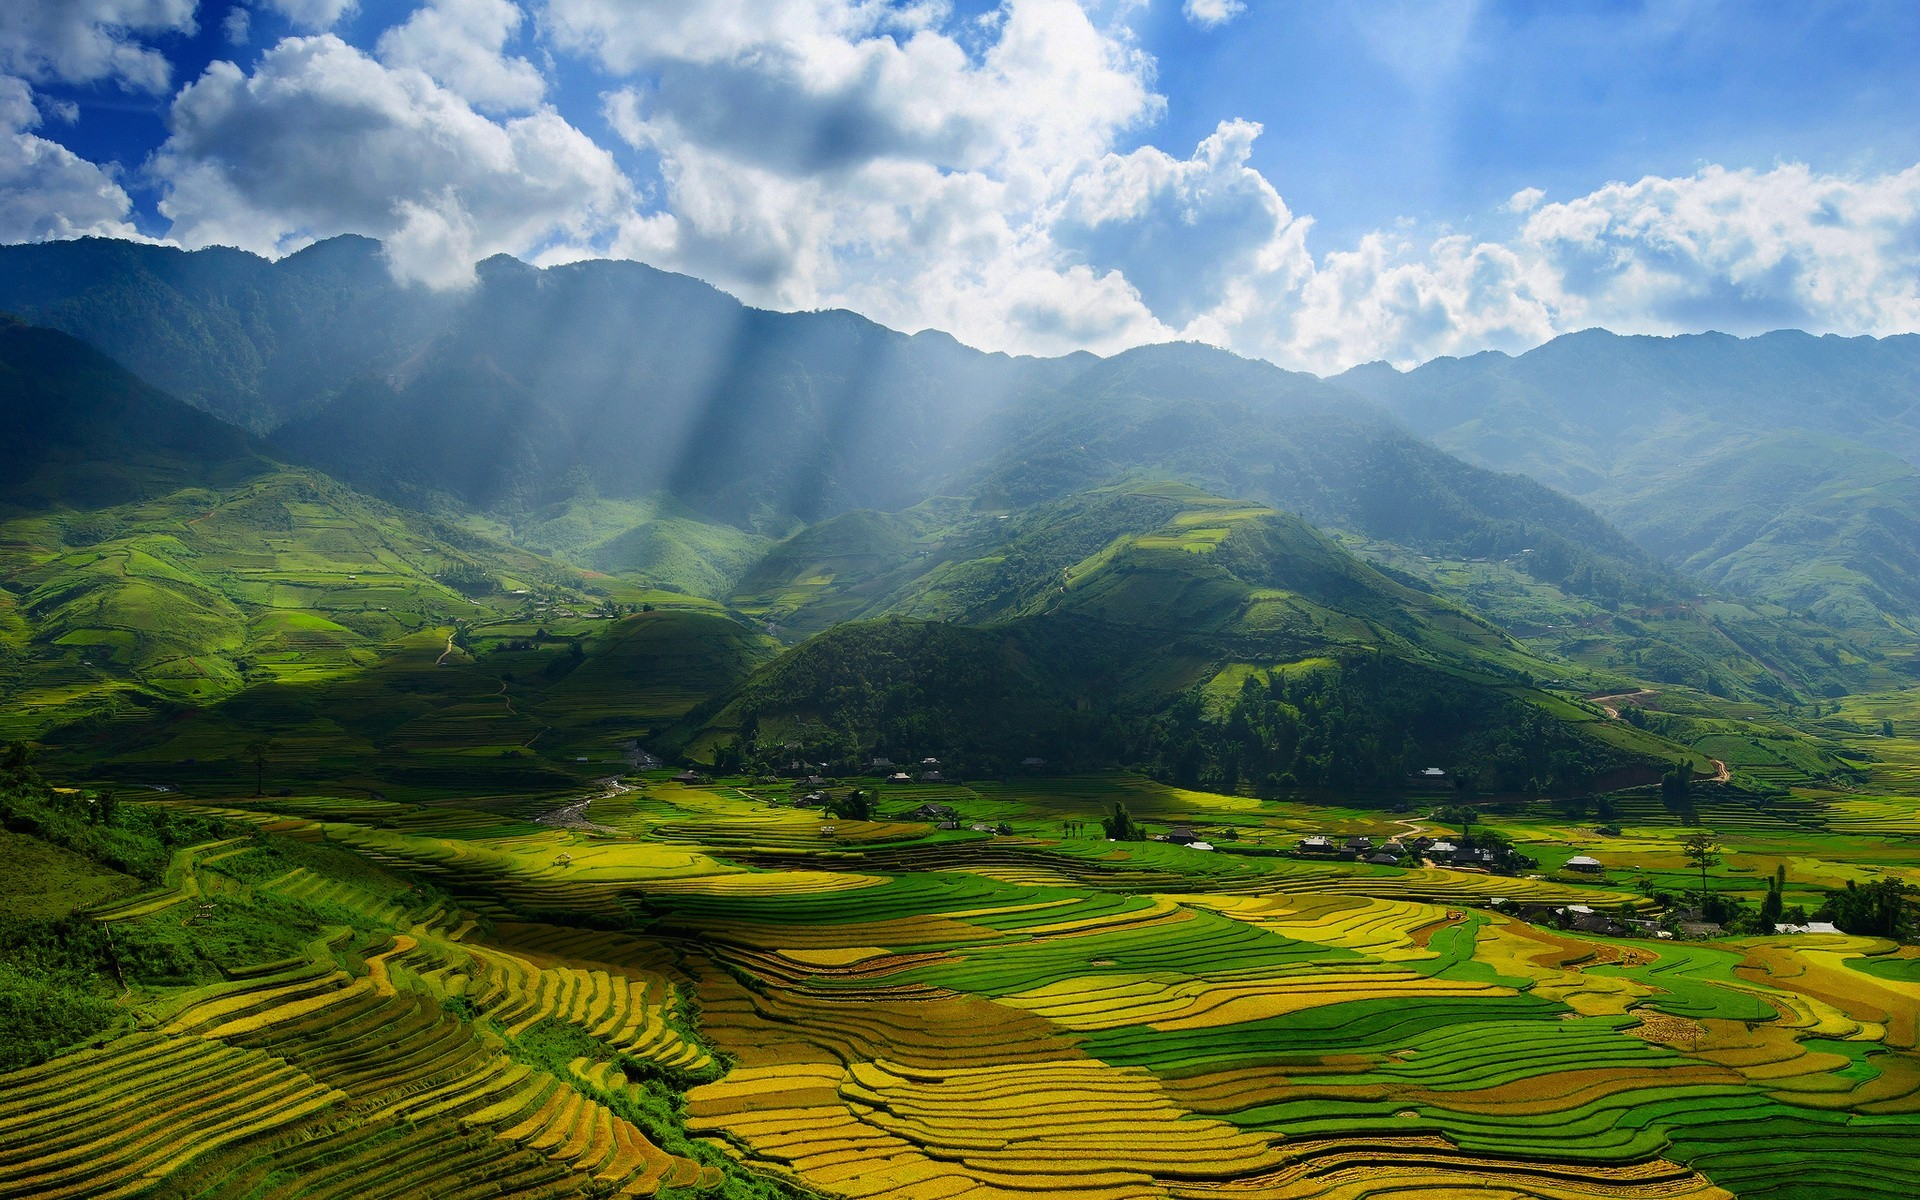 1920x1200 Daily Wallpaper: Mu Cang Chai District, Vietnam | I Like To Waste My Time